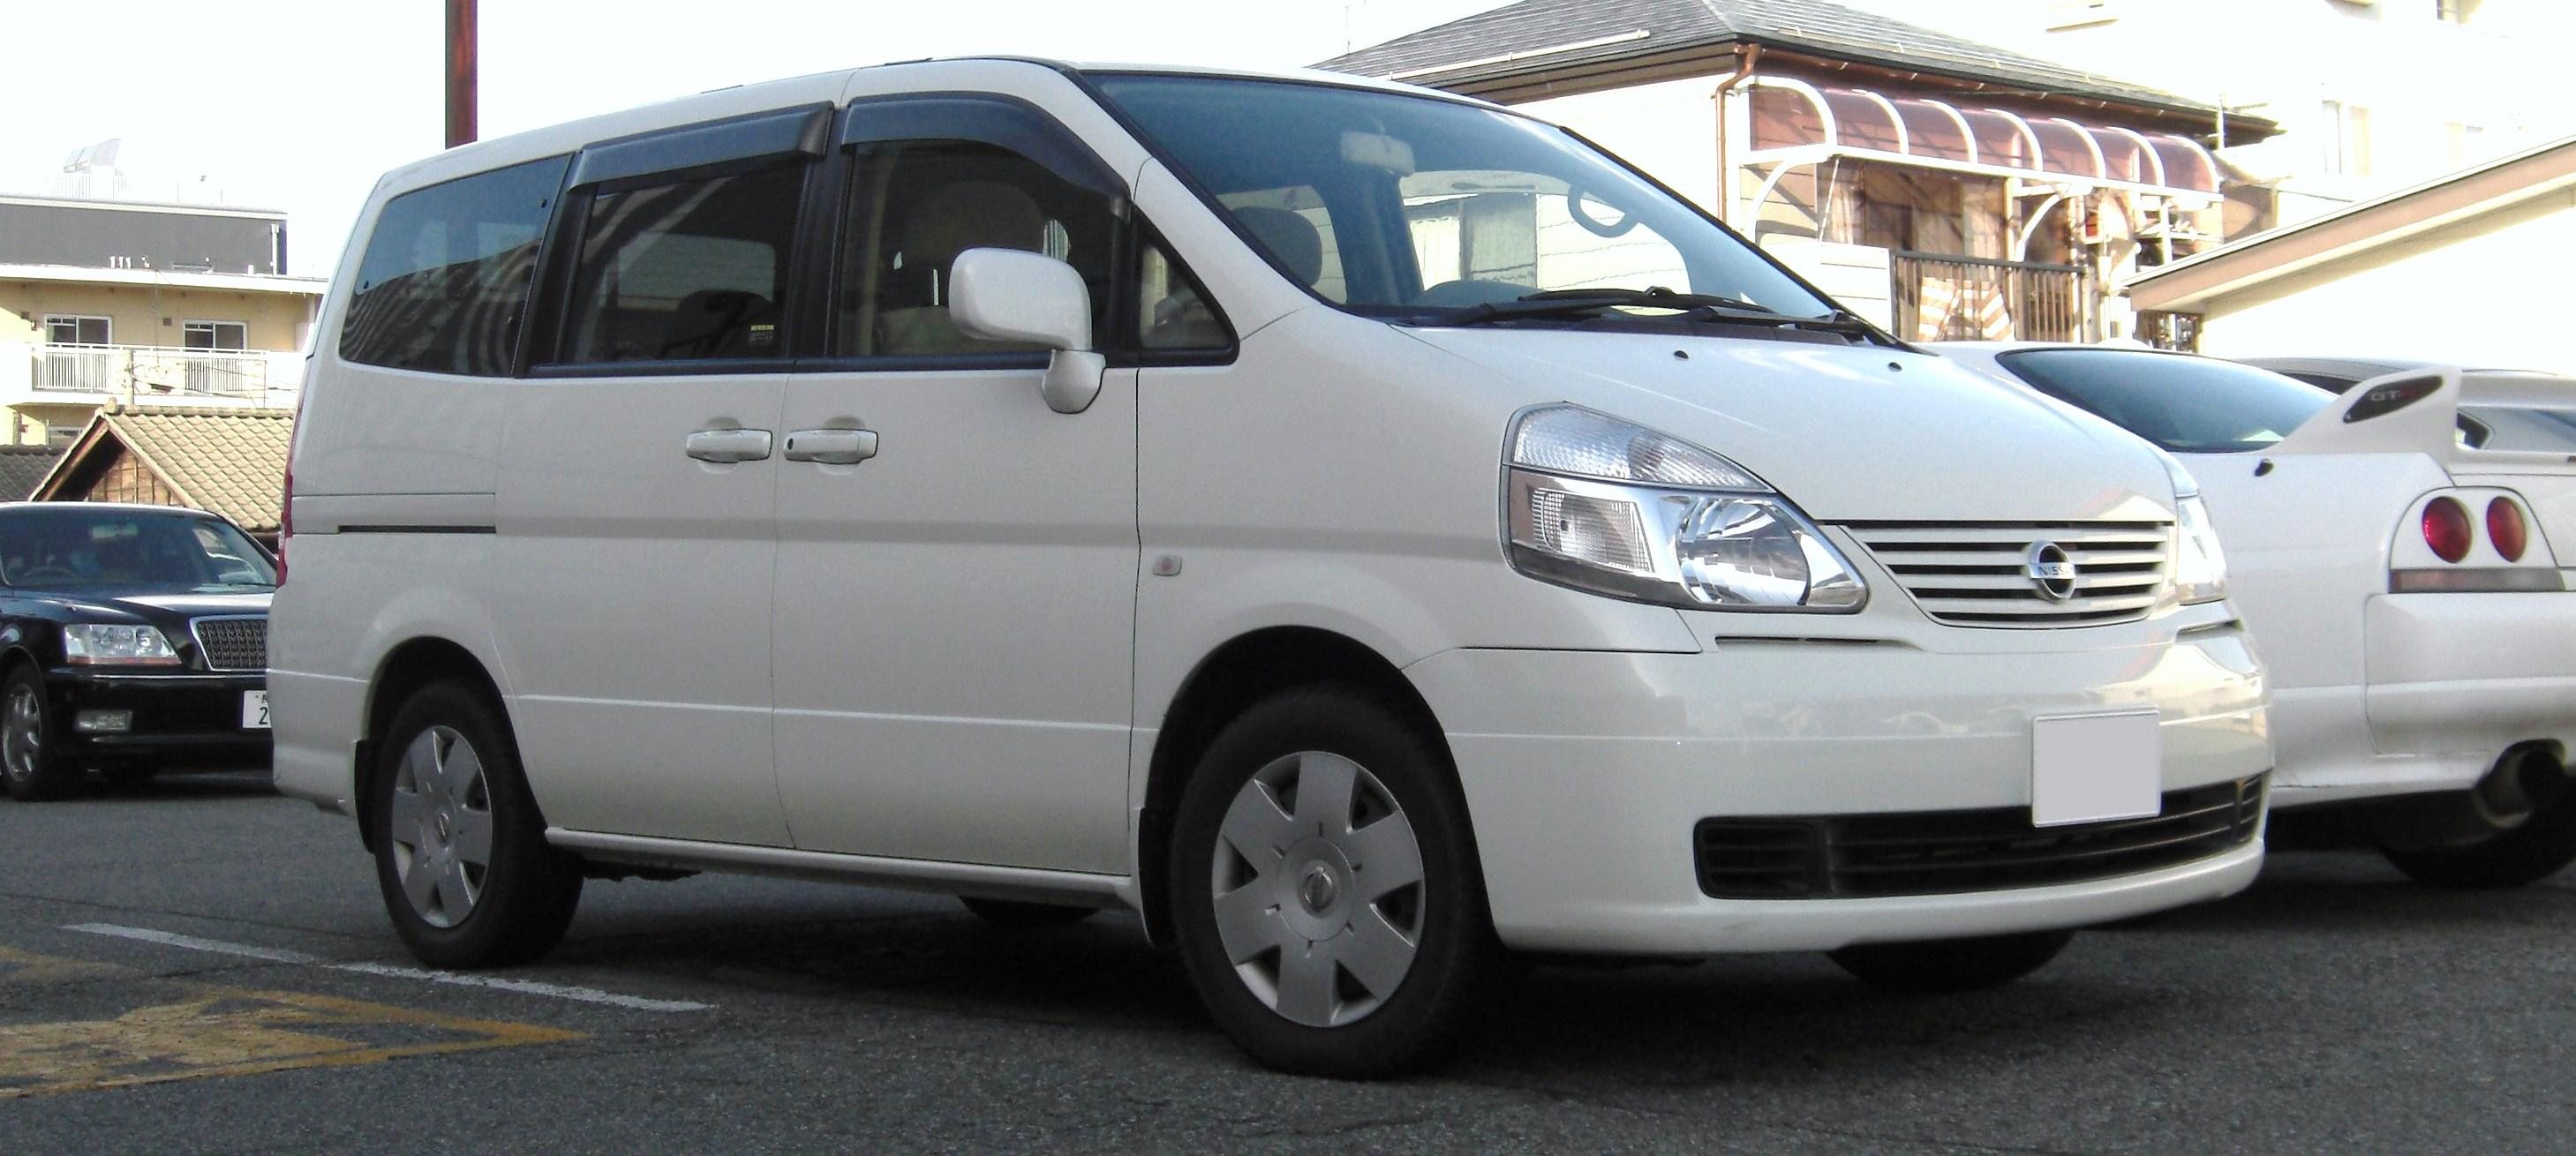 nissan serena pictures #4